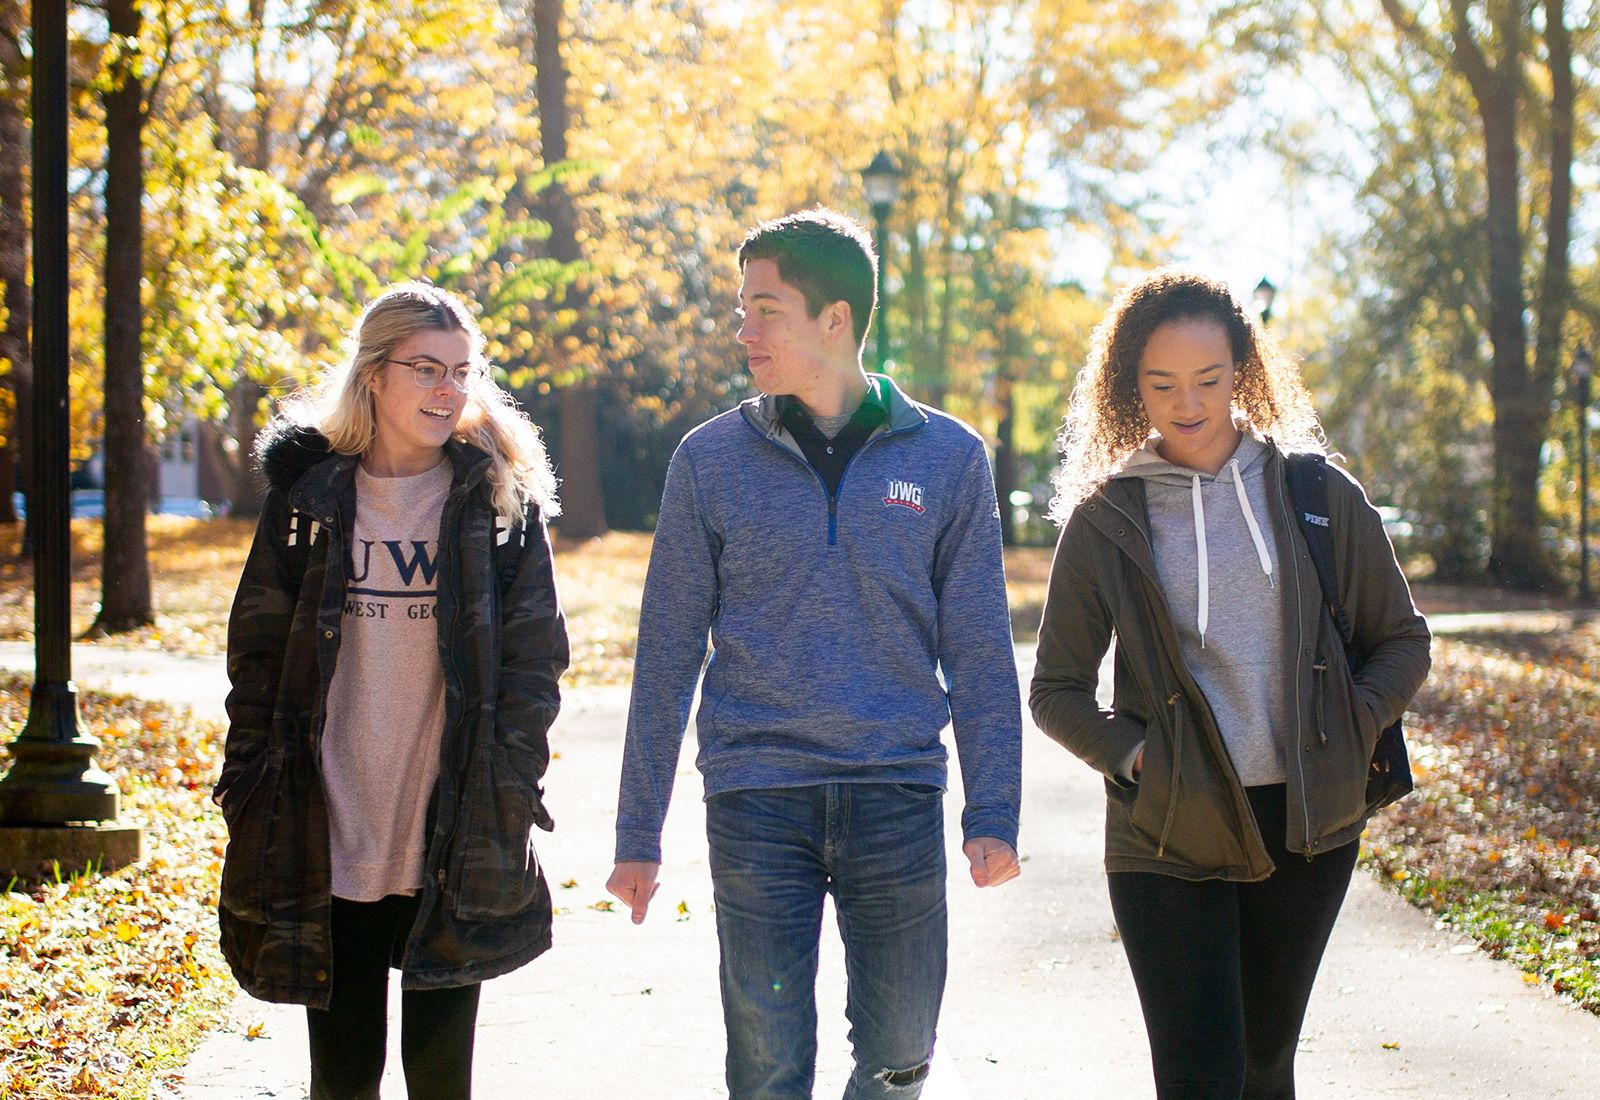 Three UWG students walking outside.